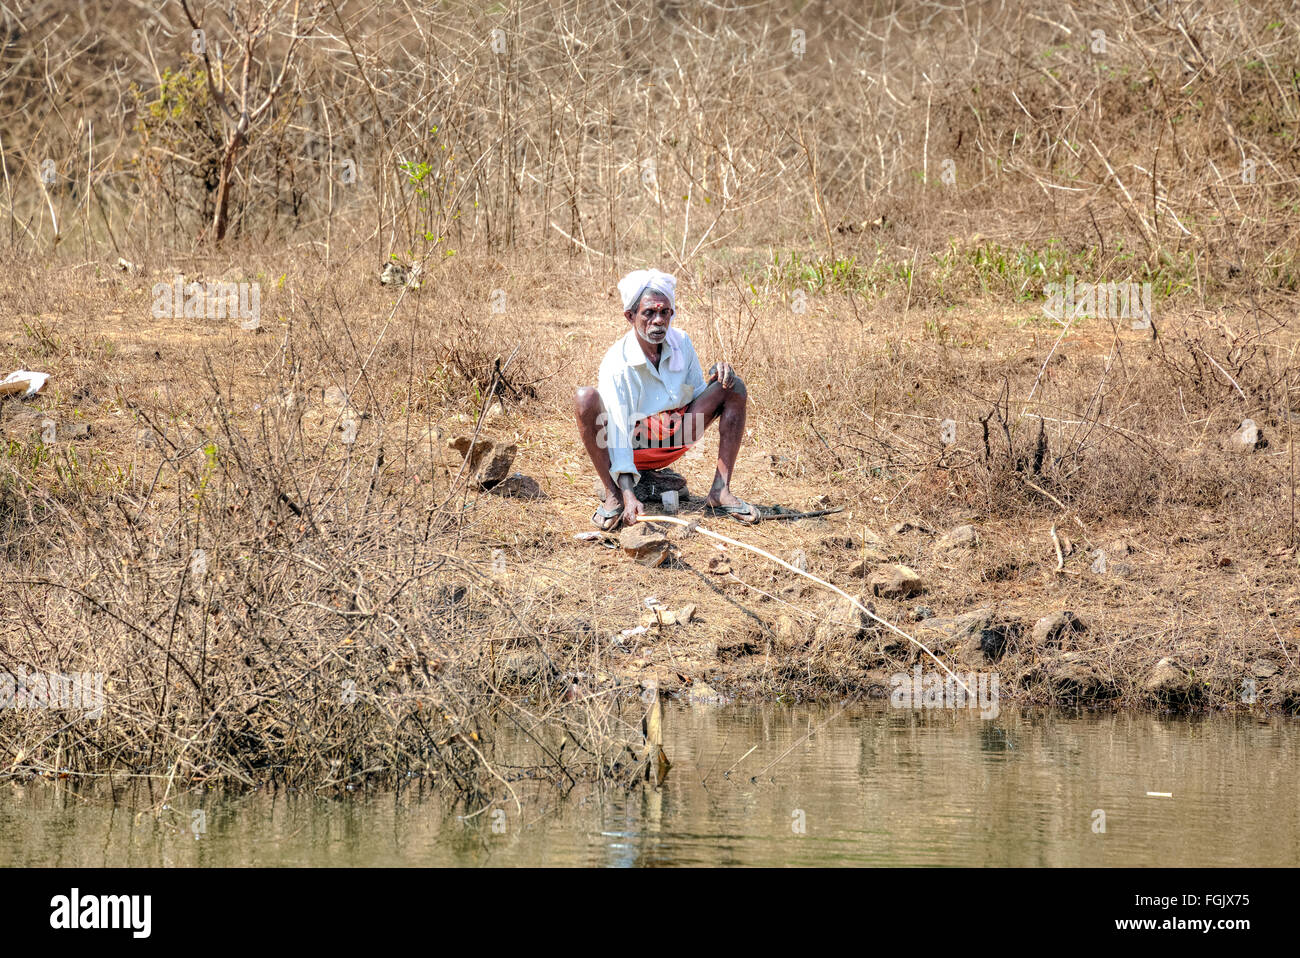 fisher man in the river of Periyar, Kerala, South India, Asia - Stock Image